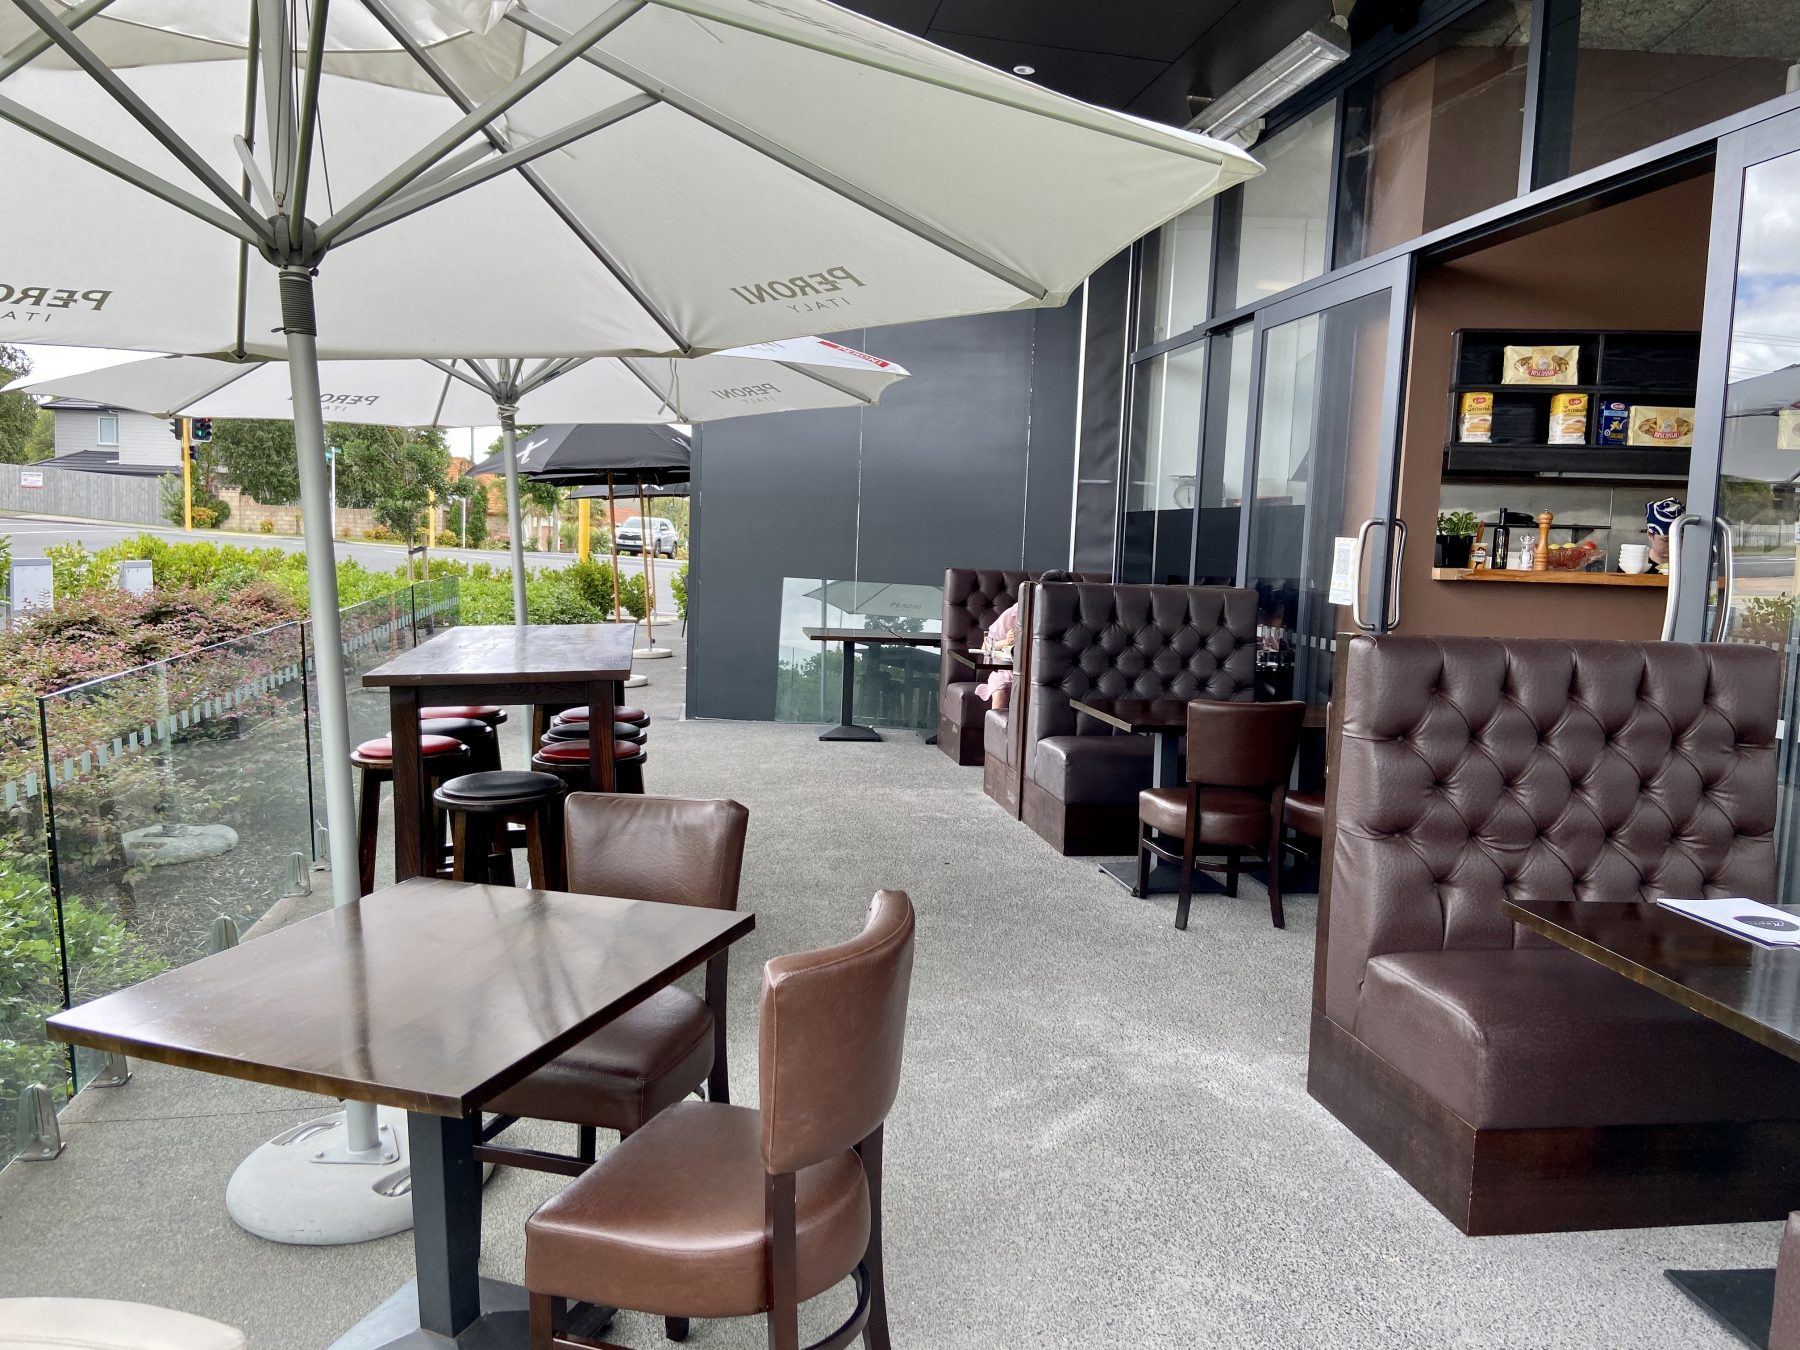 Outdoor Area at Amore Italian Restaurant Hobsonville